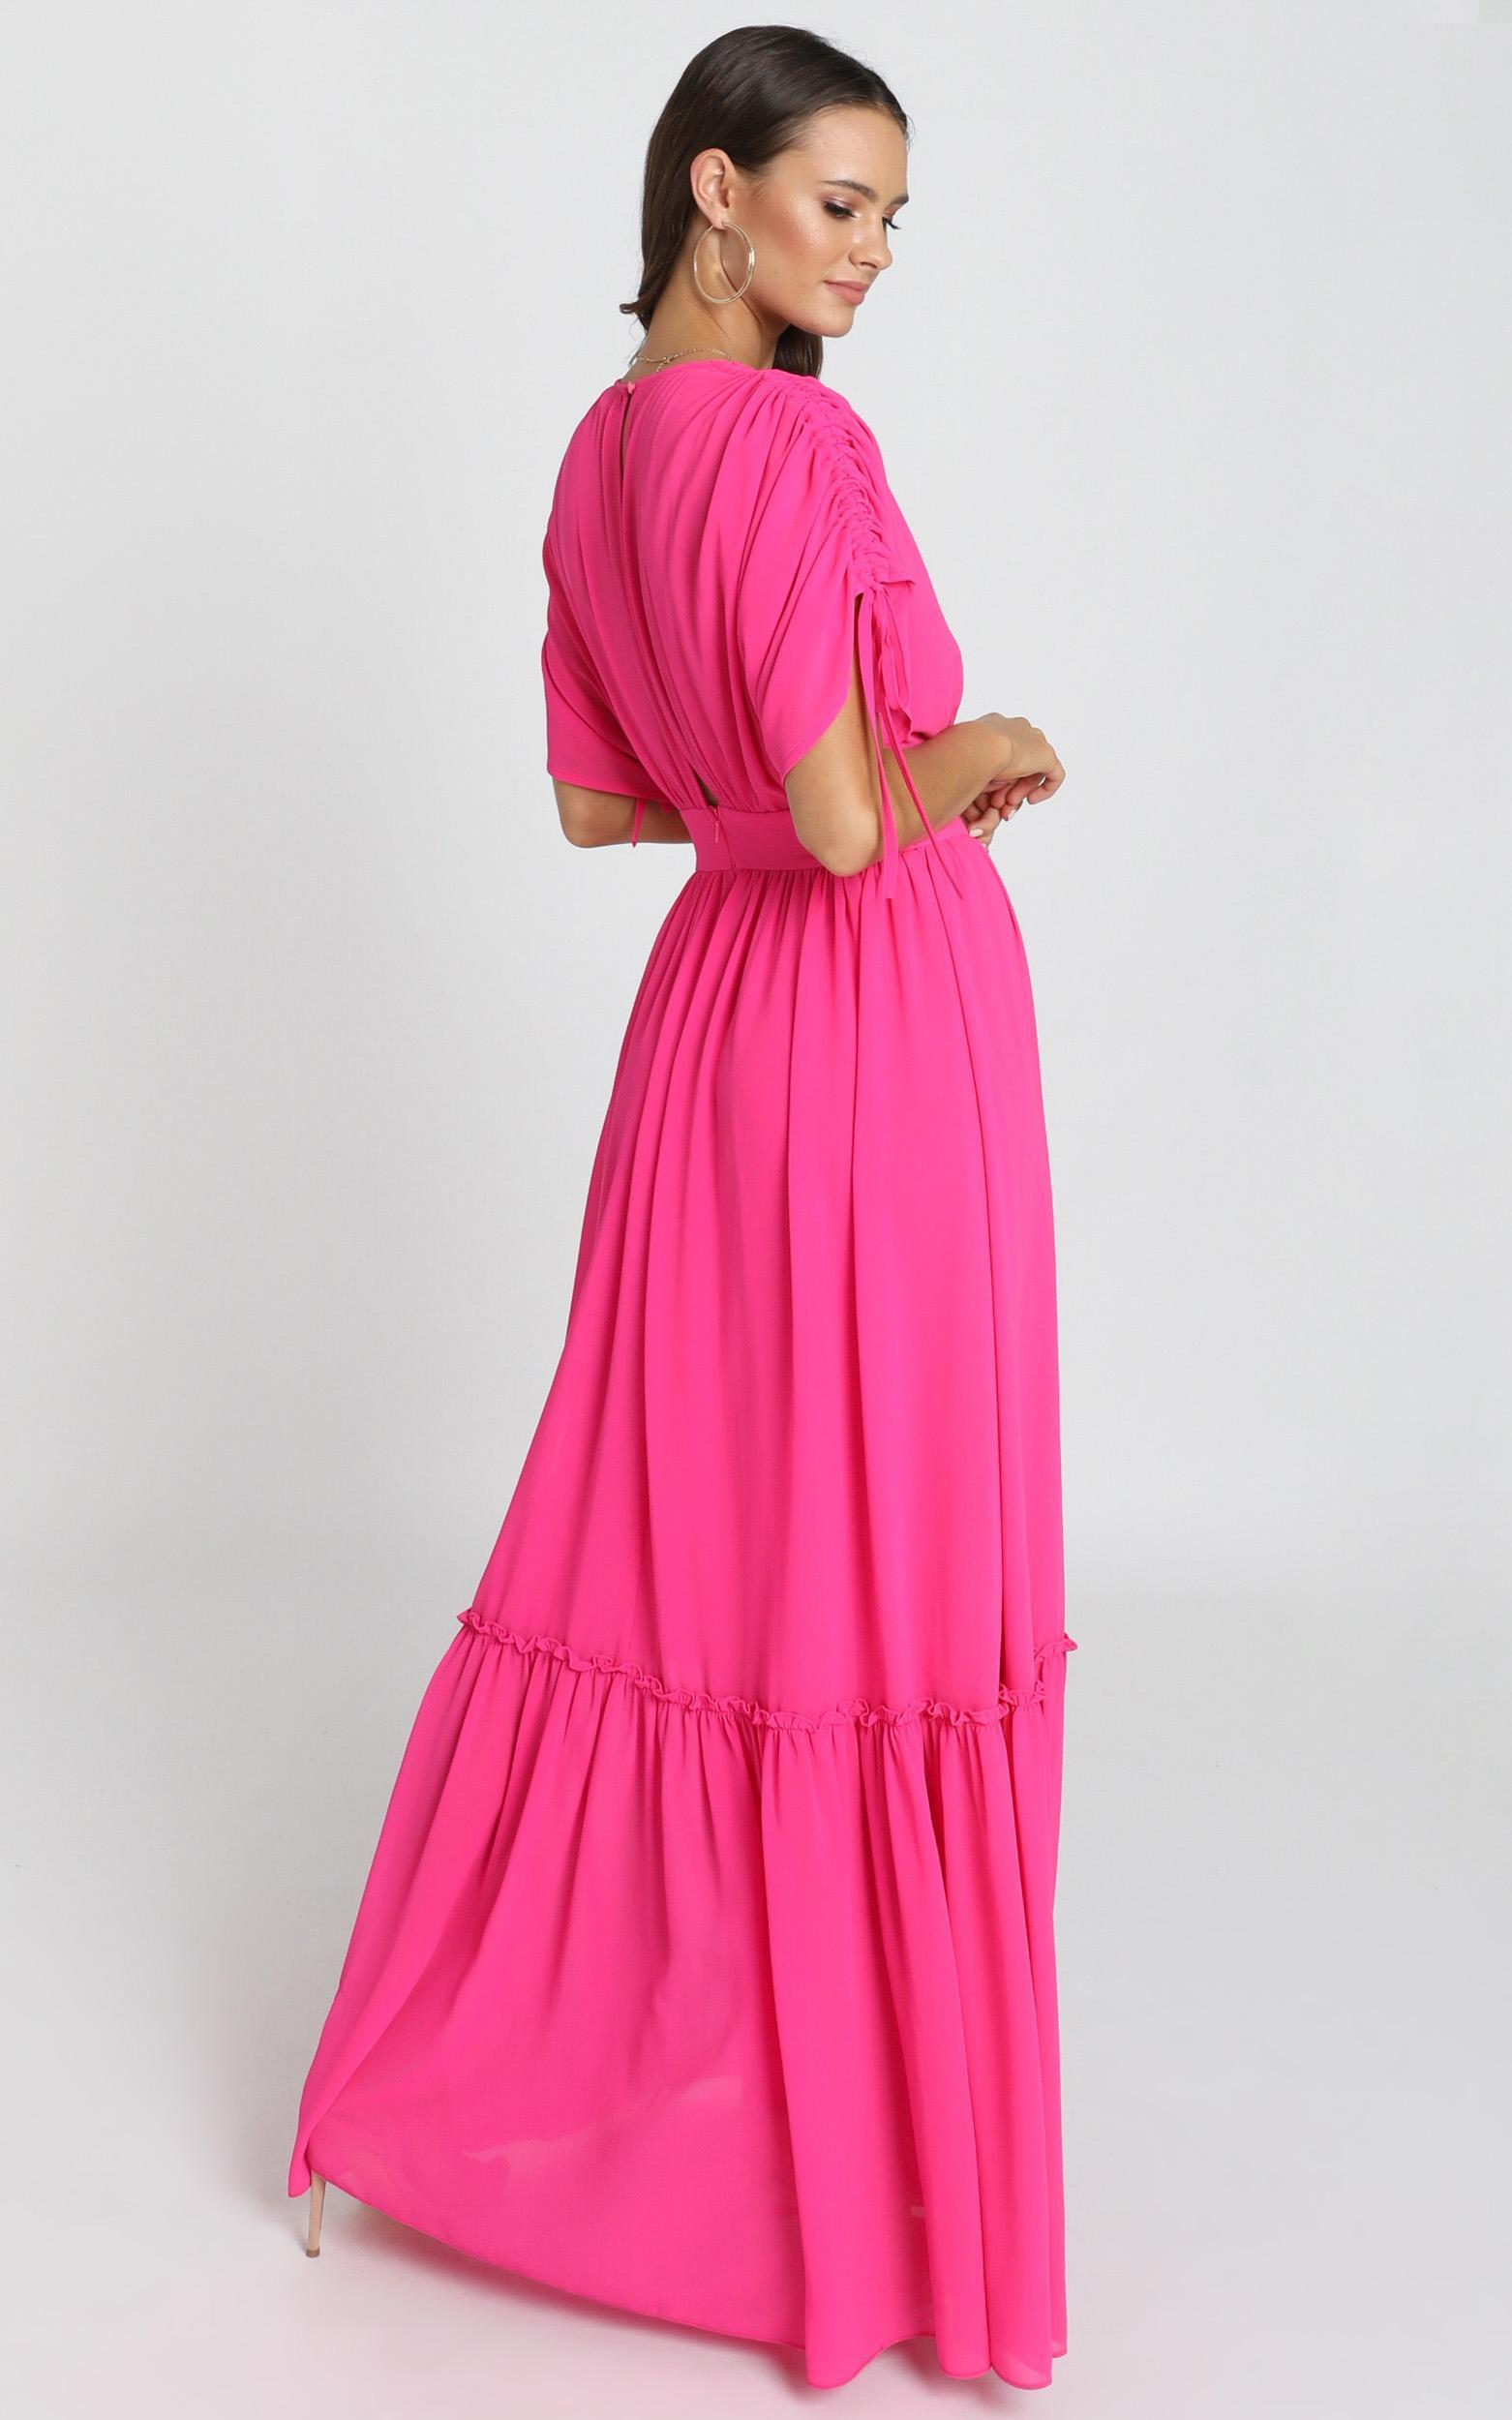 Angelic Dream Maxi Dress in hot pink - 12 (L), Pink, hi-res image number null